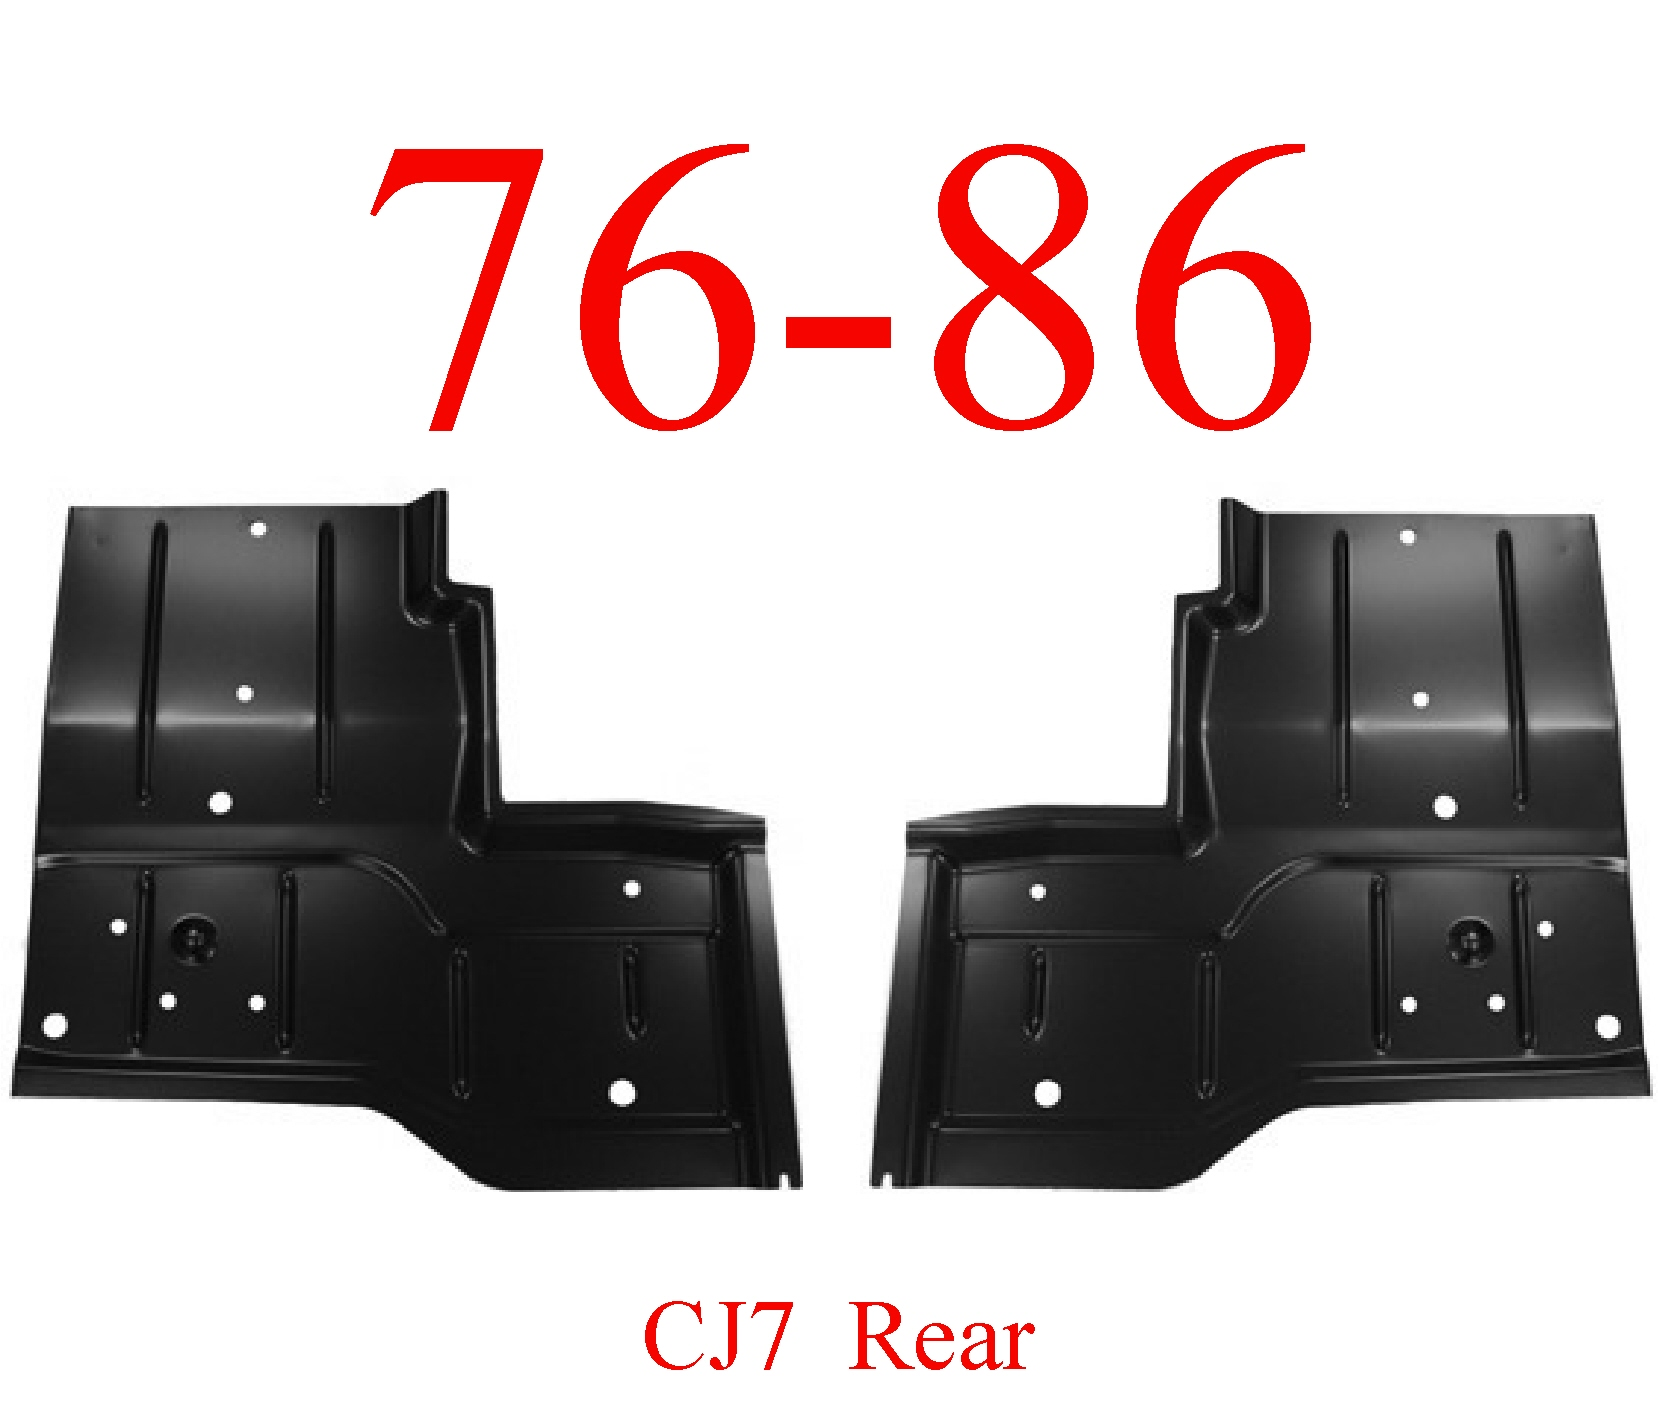 76-86 Jeep CJ7 Left & Right Rear Floor Pan Set